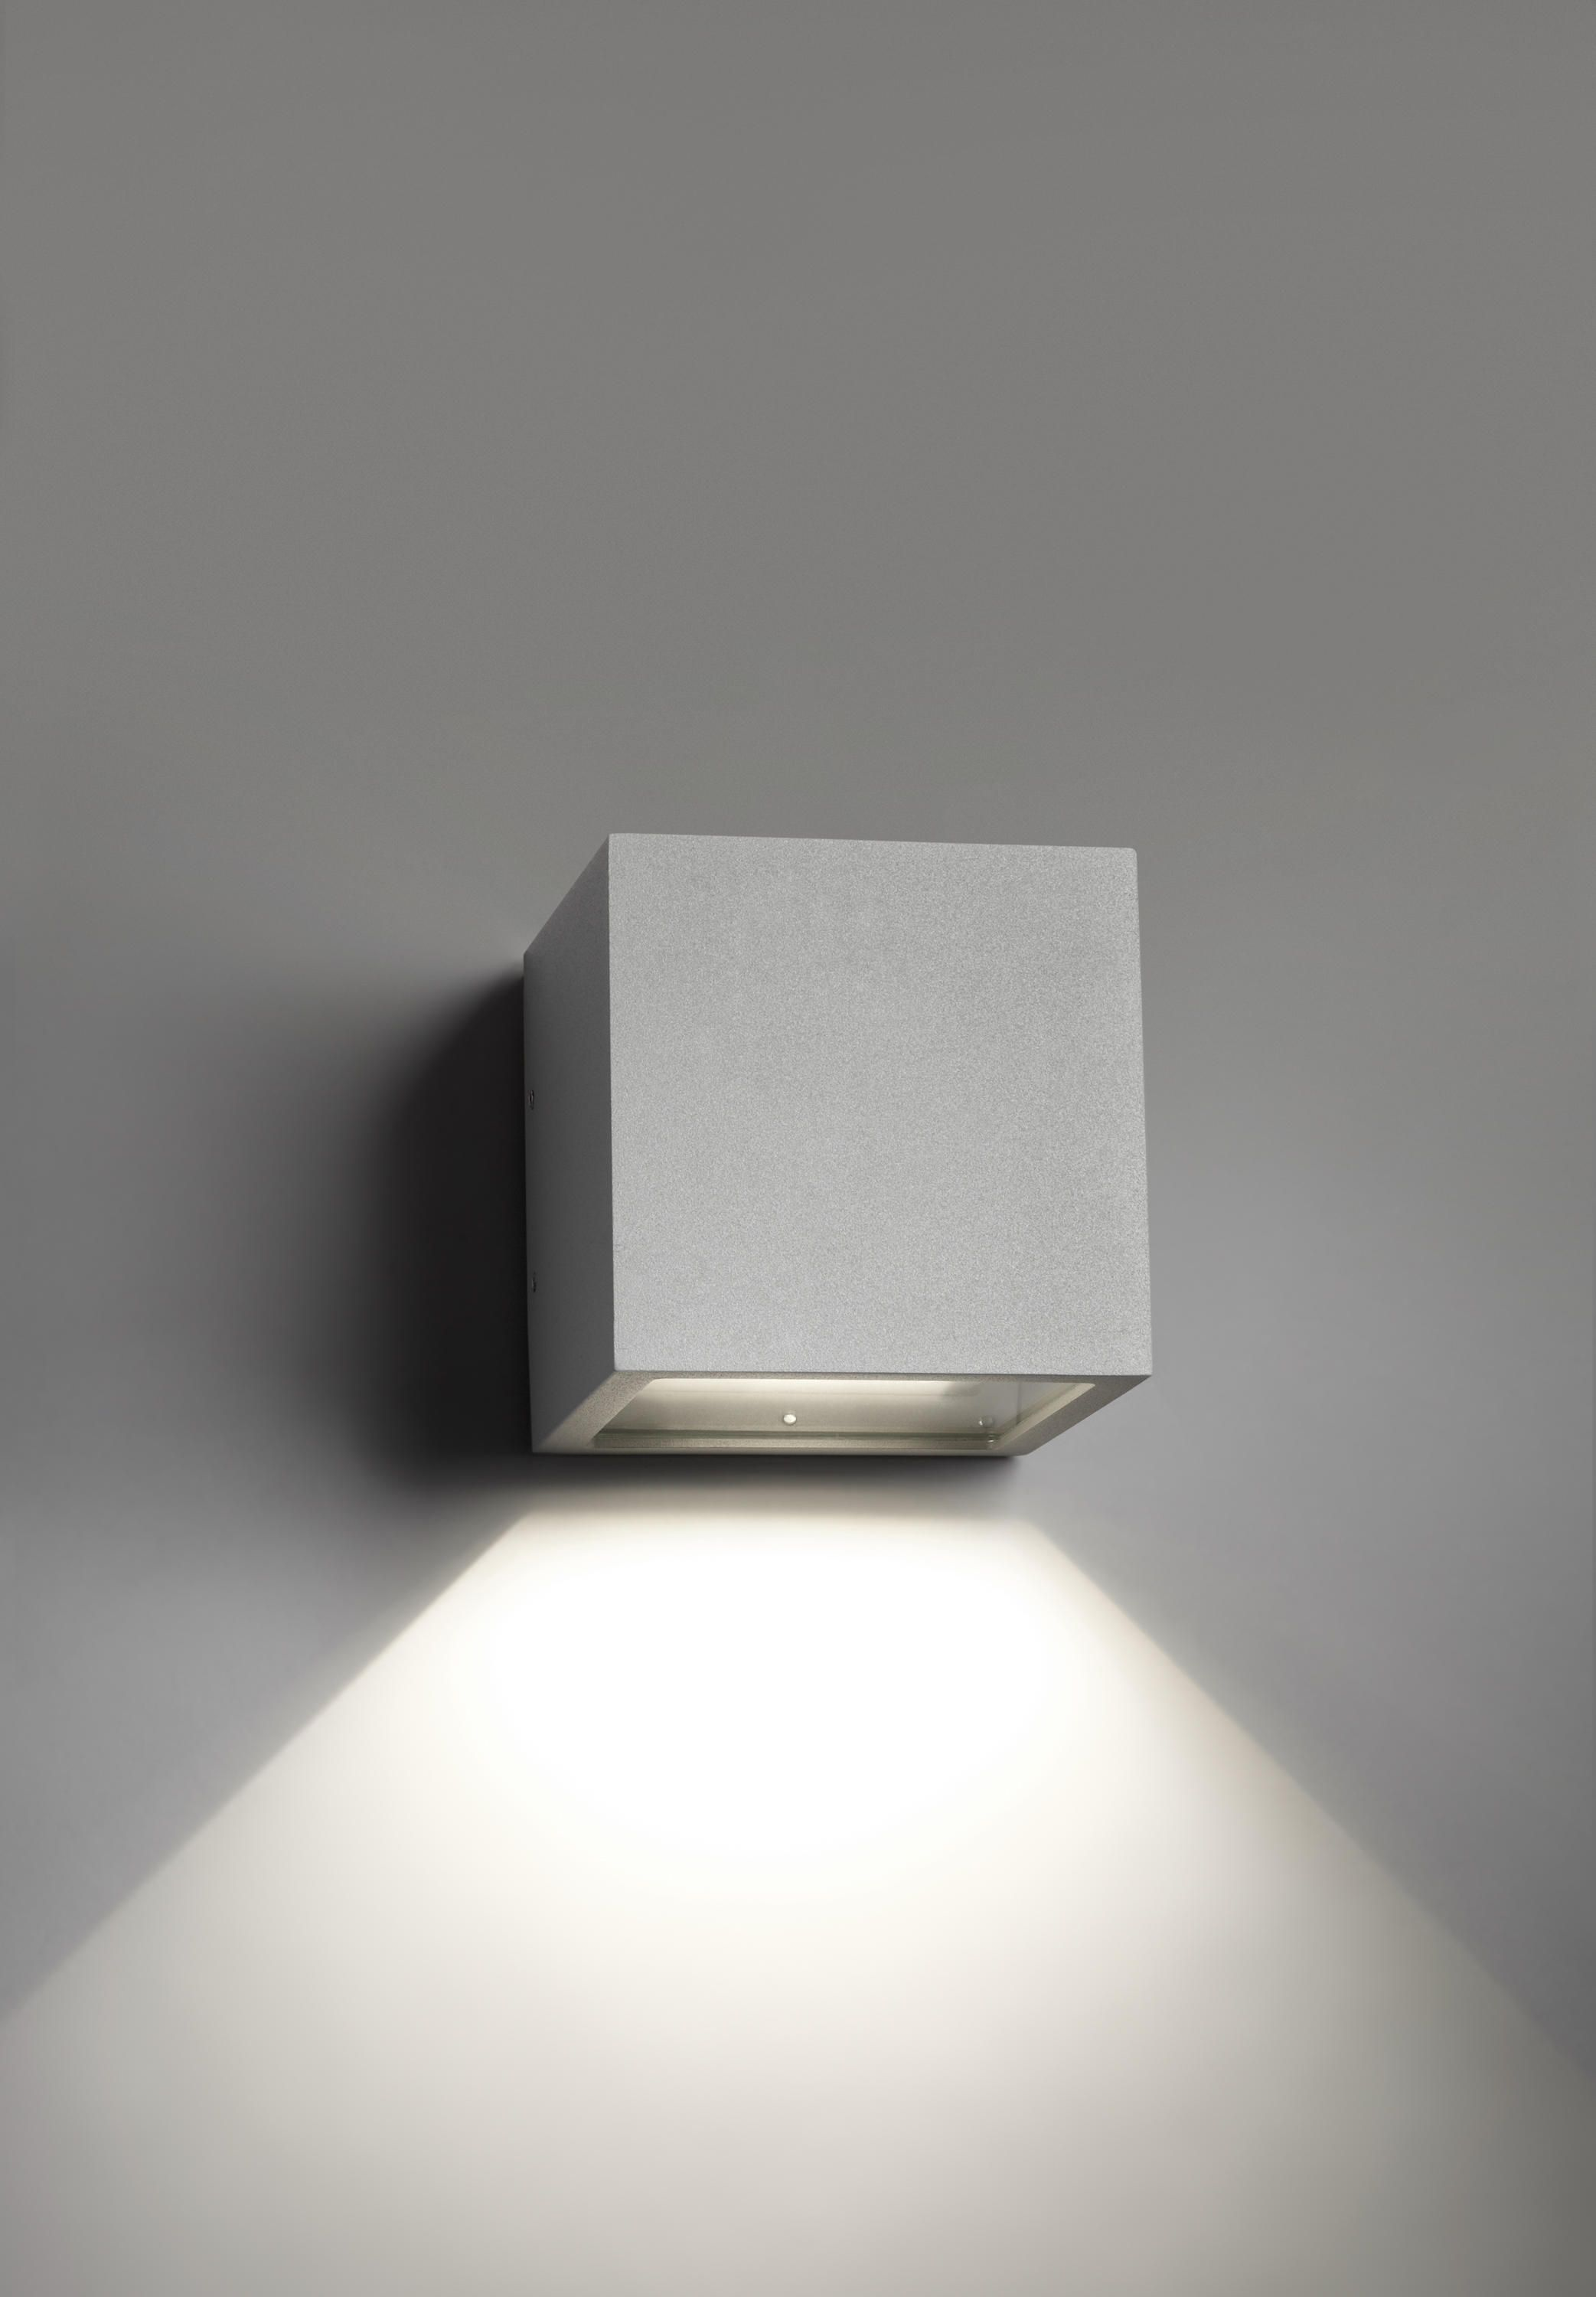 Cube Down G9 Designer Wall Mounted Spotlights From Light Point All Information High Resolution Images Led Wall Lights Wall Lighting Design Wall Lights